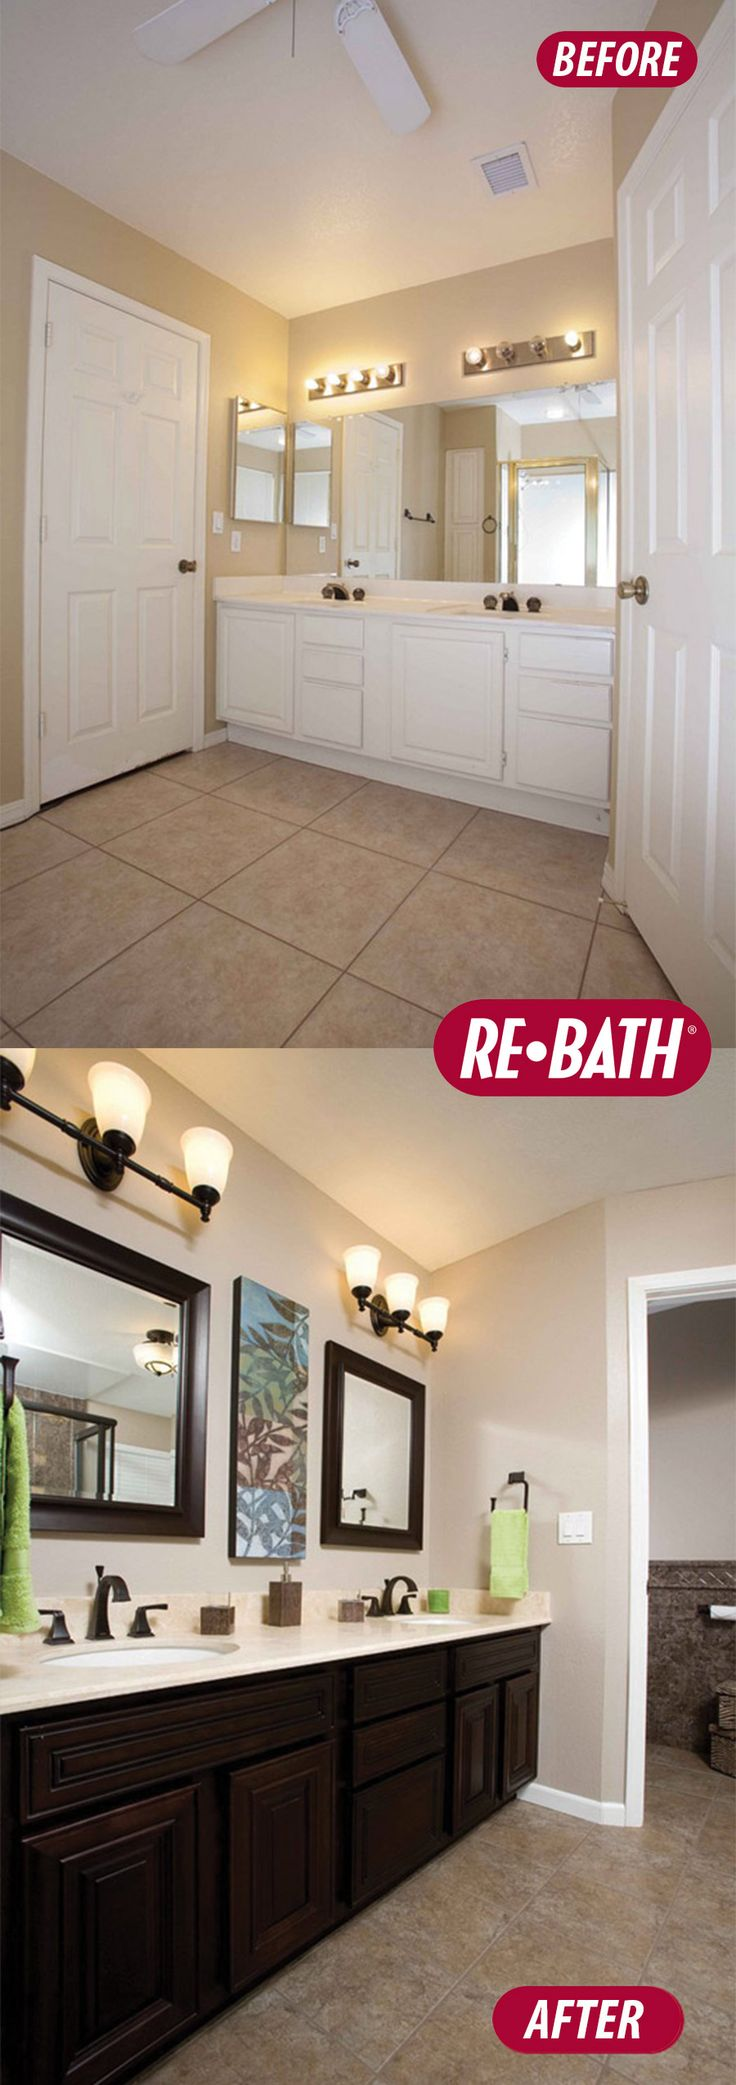 Bathroom Remodel Pics Before After 104 best re-bath® before & after images on pinterest | bathroom